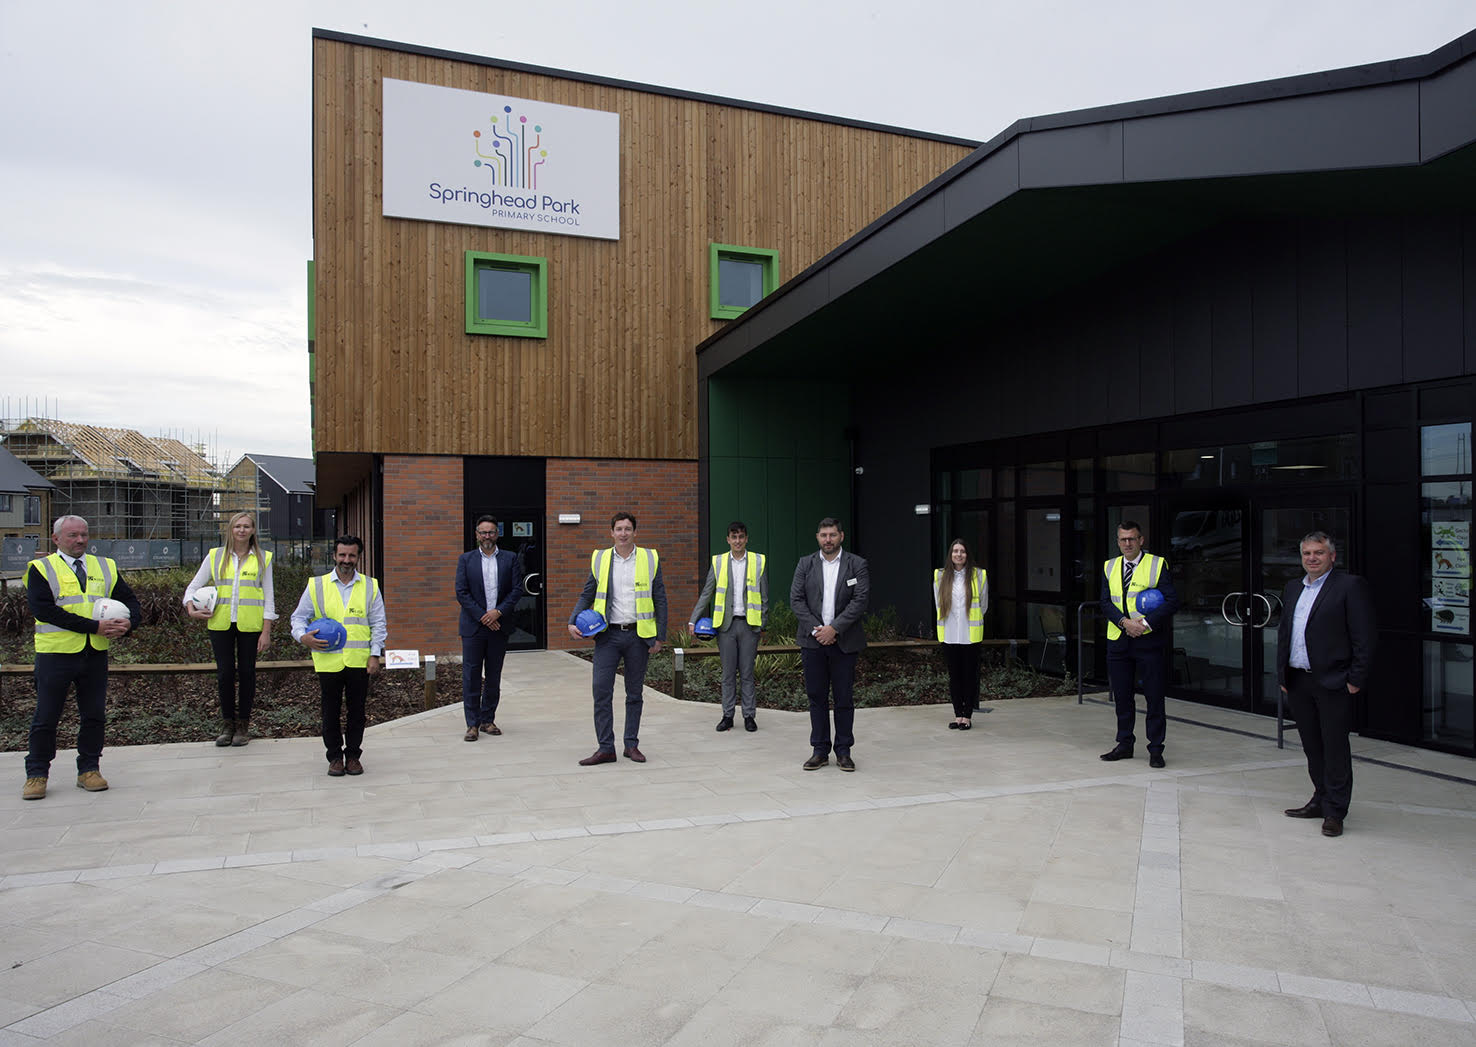 Integra Buildings Managing Director Gary Parker, fourth from left, and Commercial Director Chris Turner, right, at the grand opening of Springhead Park Primary School. Picture: Kier Construction/Carlos Dominguez Photography